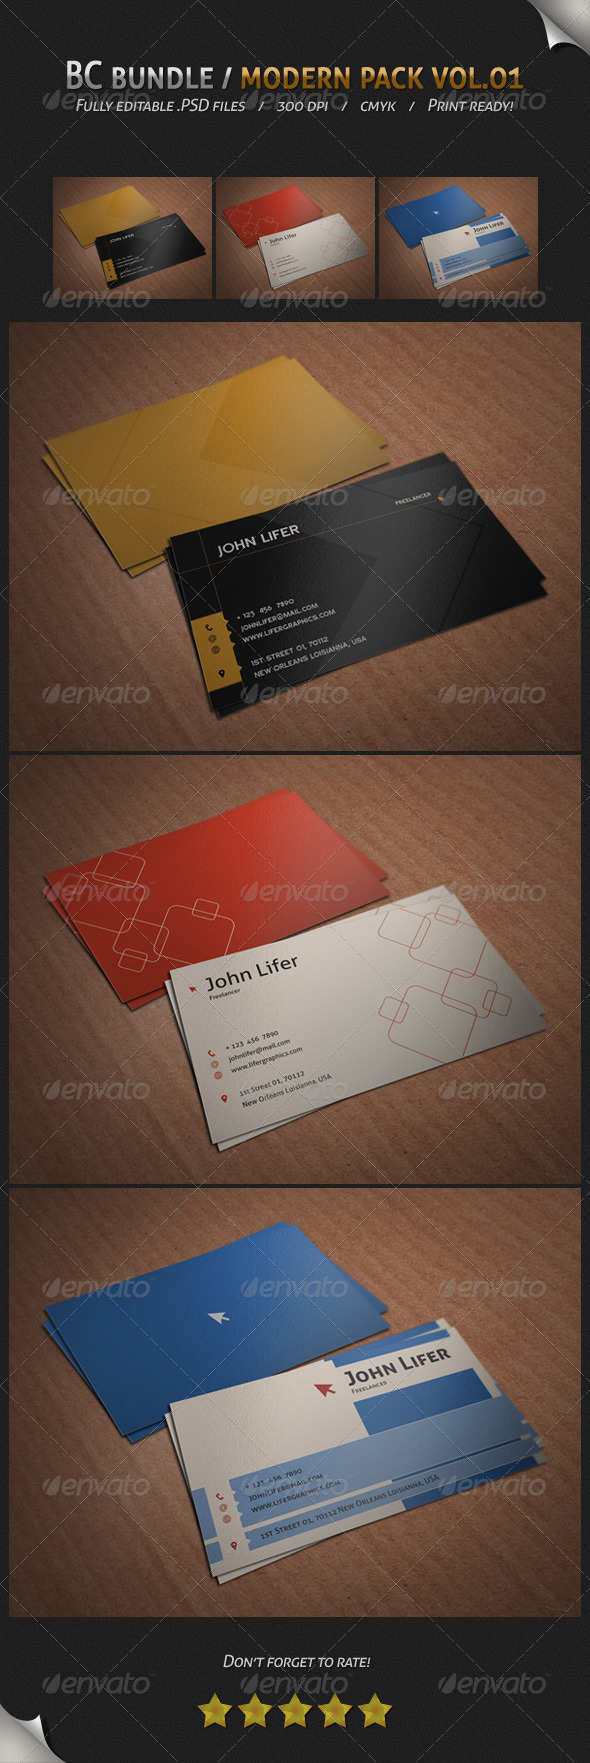 GraphicRiver BC Bundle Modern Pack Vol.01 4280066